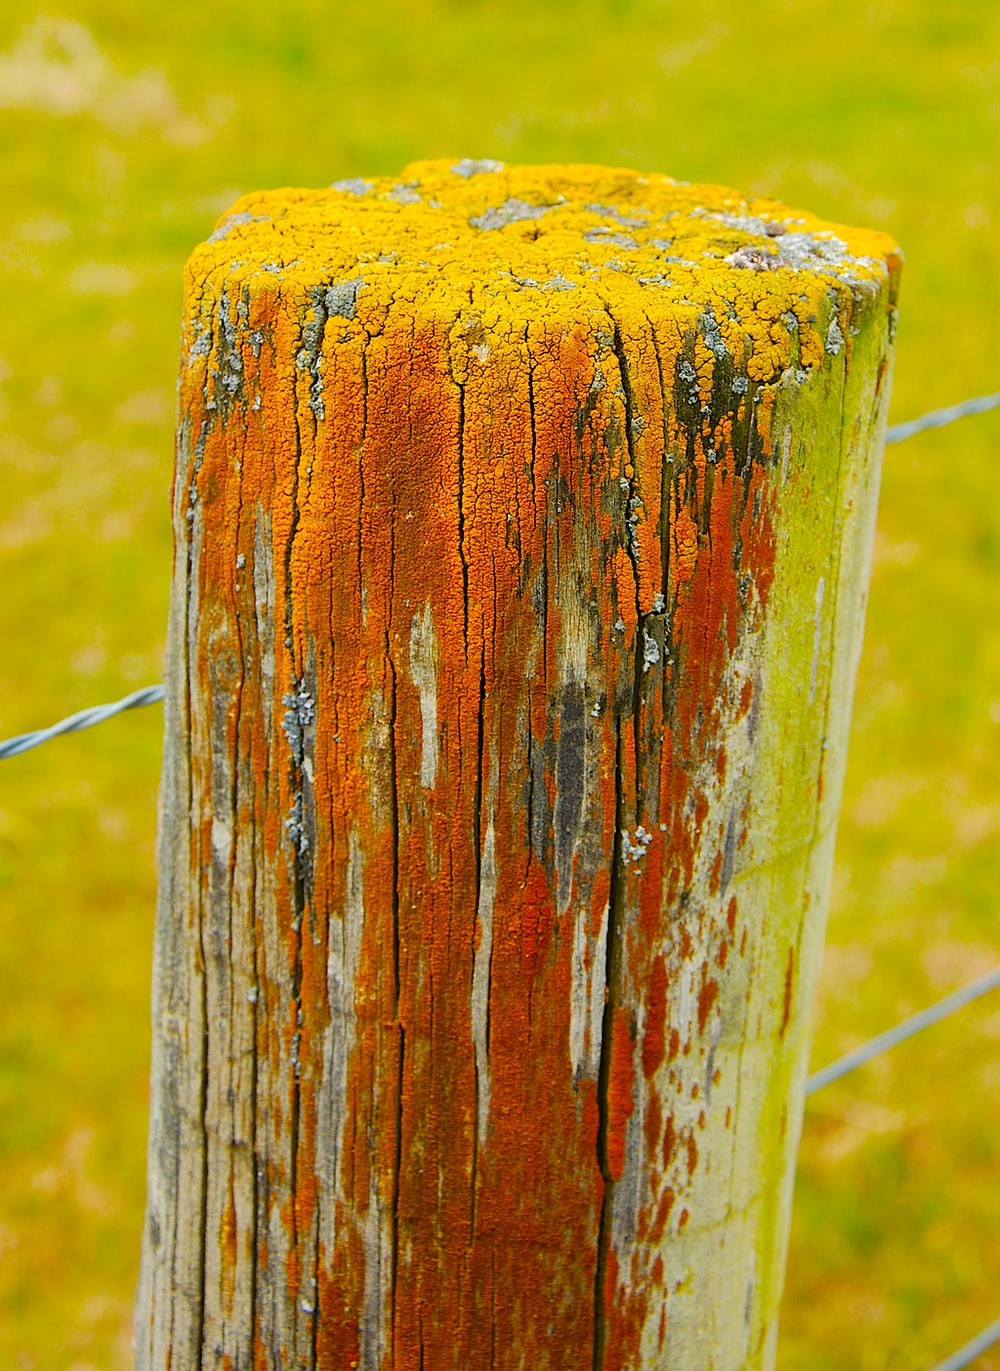 brown wooden post with black wire